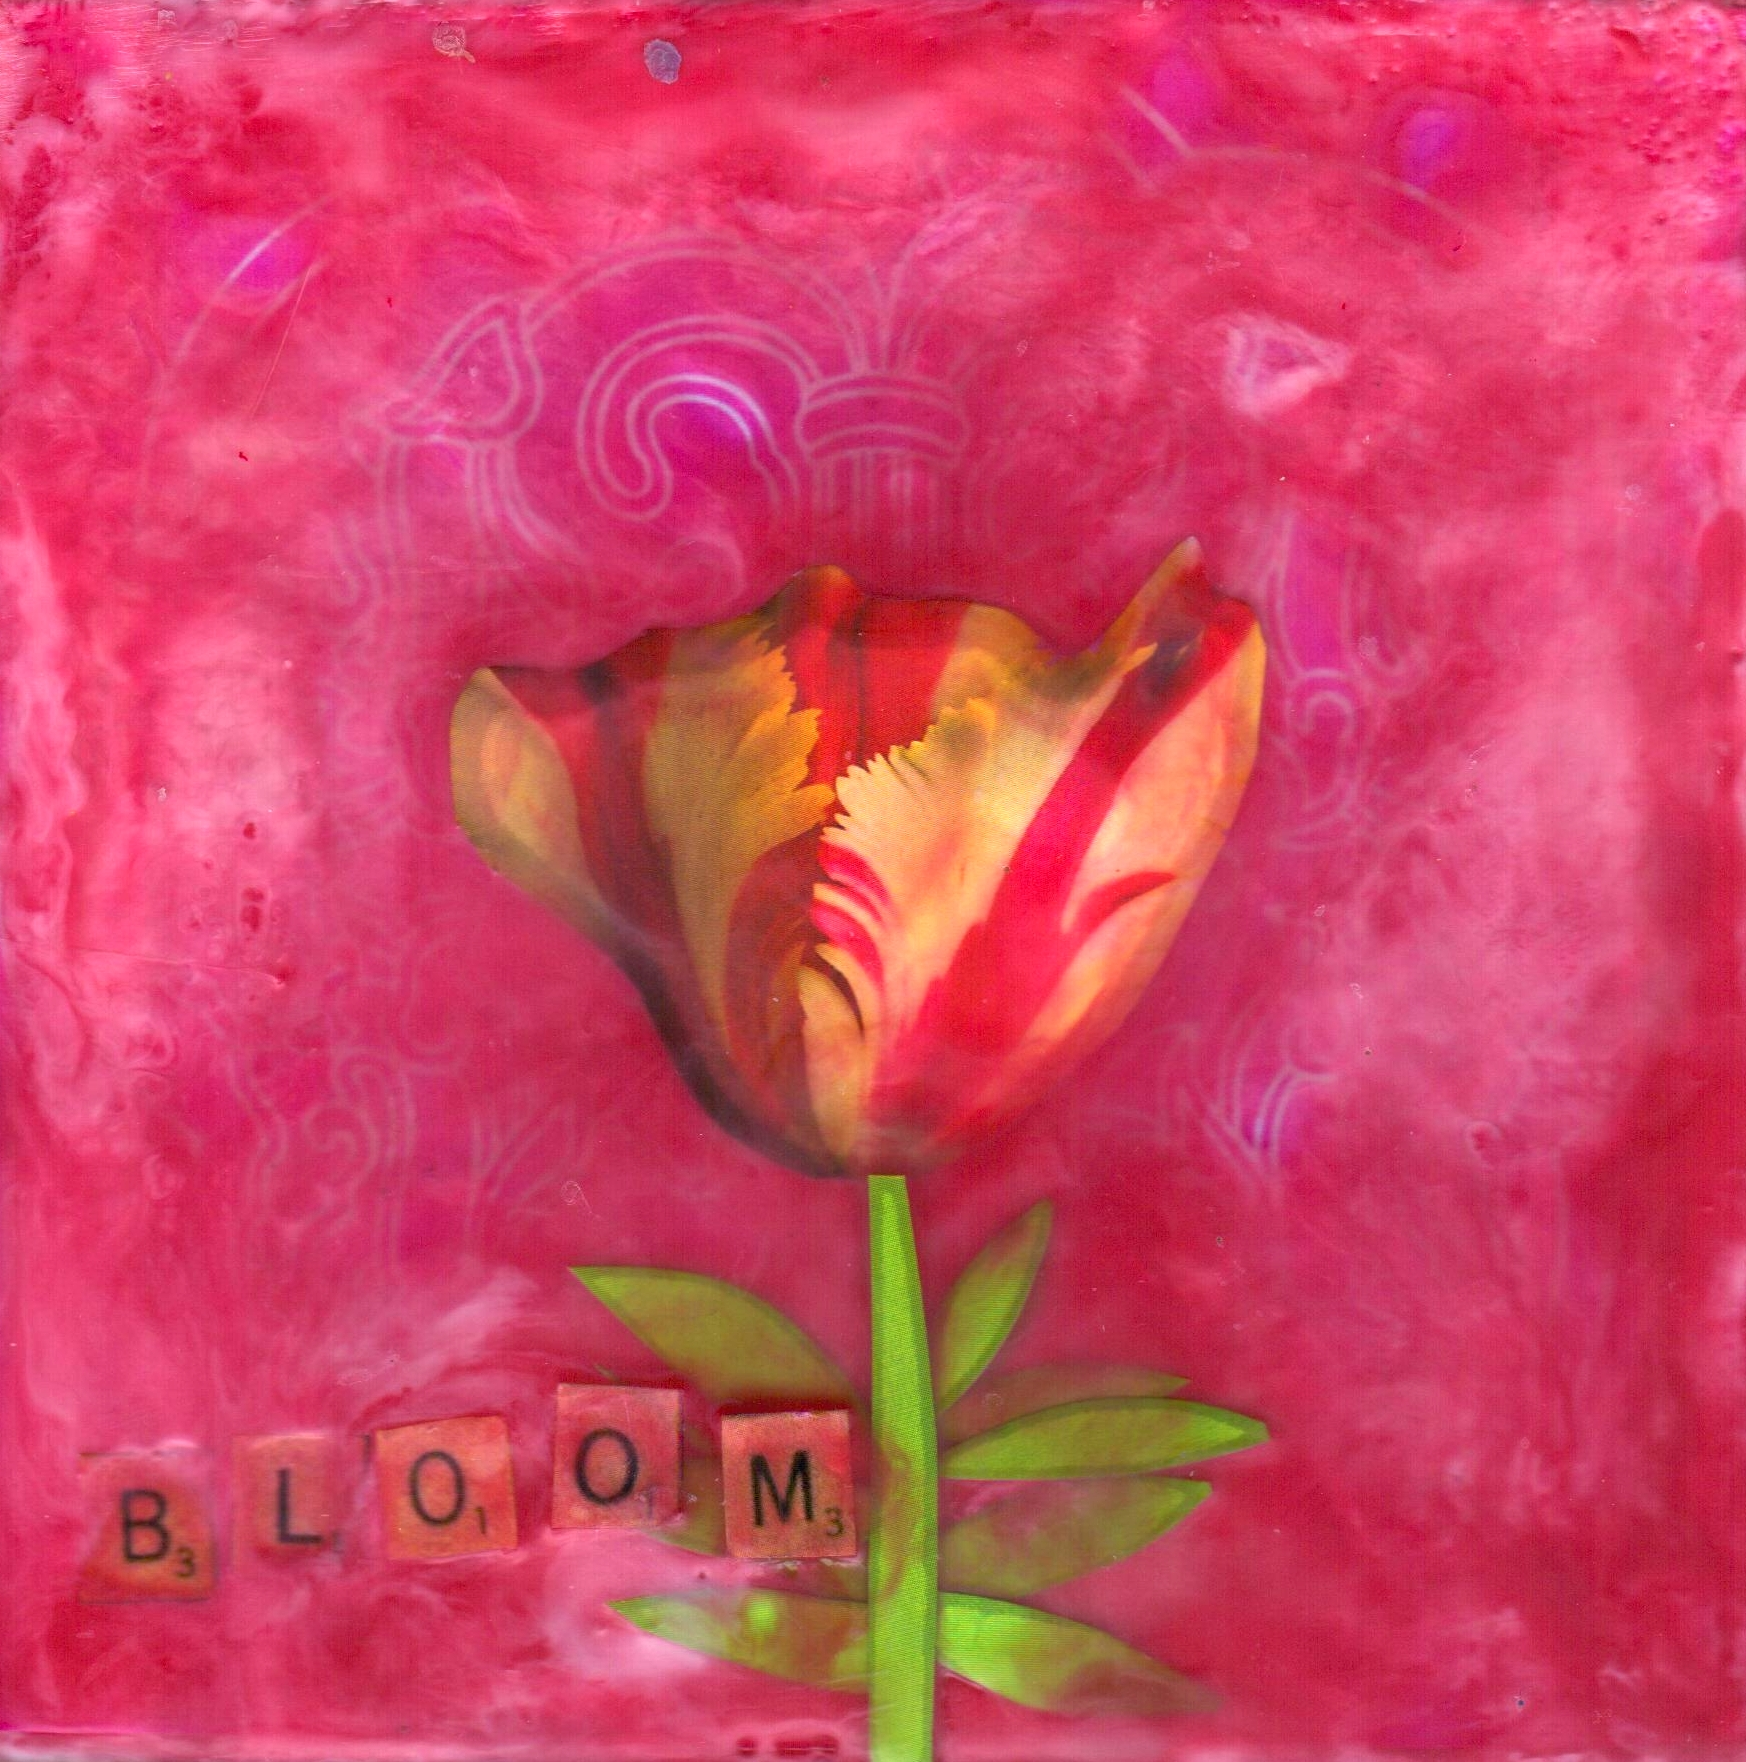 Bloom, mixed media encaustic by Courtney Putnam